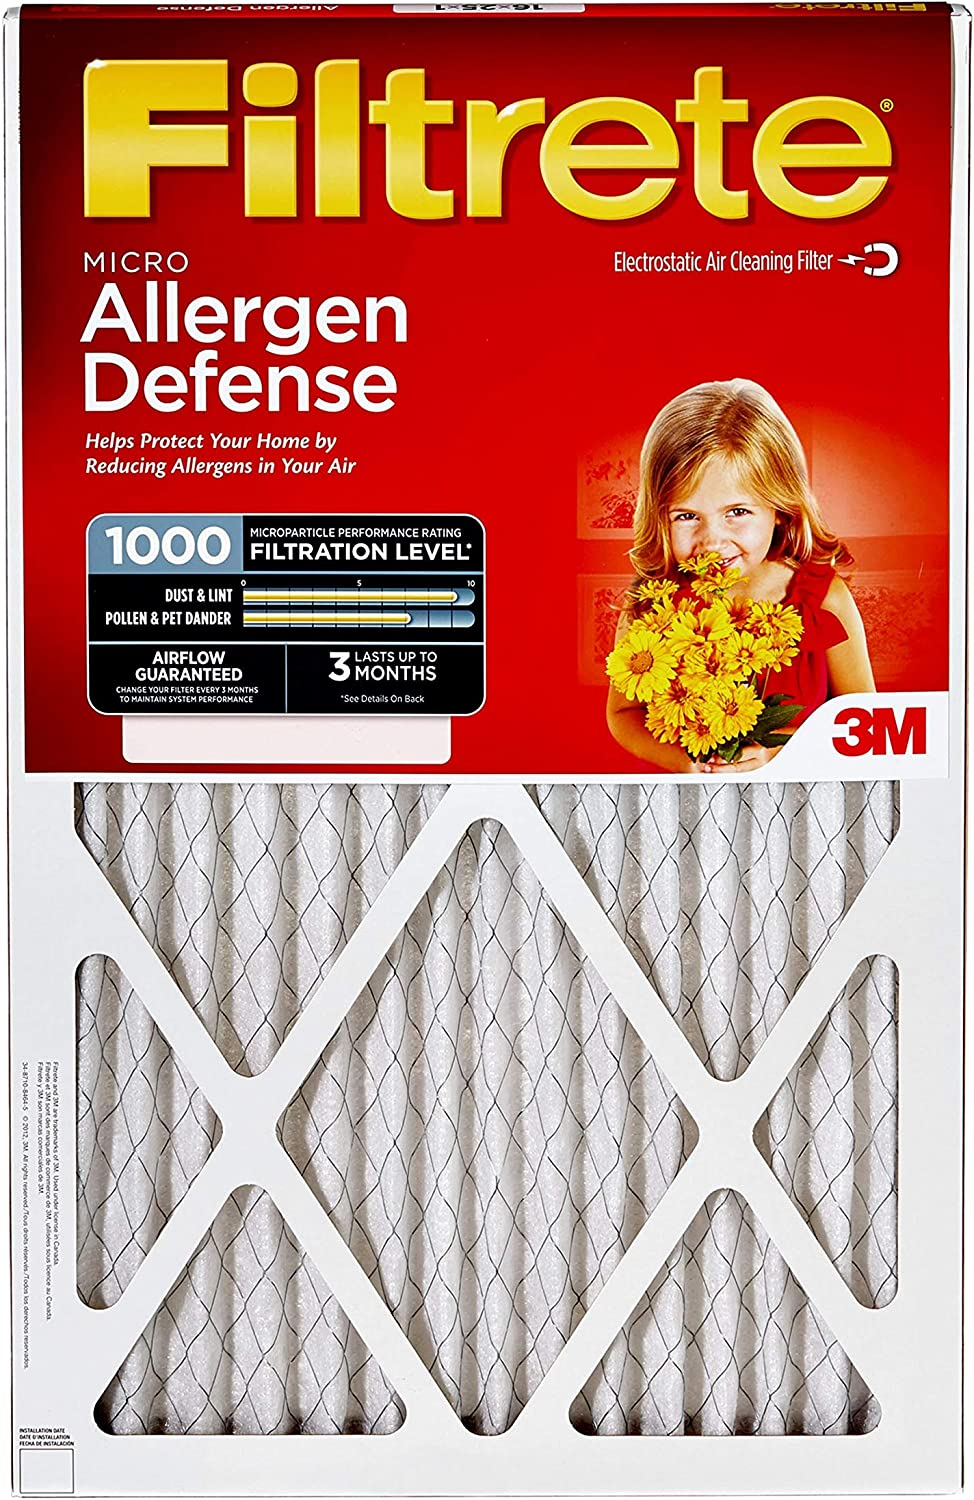 Filtrete 20x25x1, AC Furnace Air Filter, MPR 1000, Micro Allergen Defense, 4-Pack